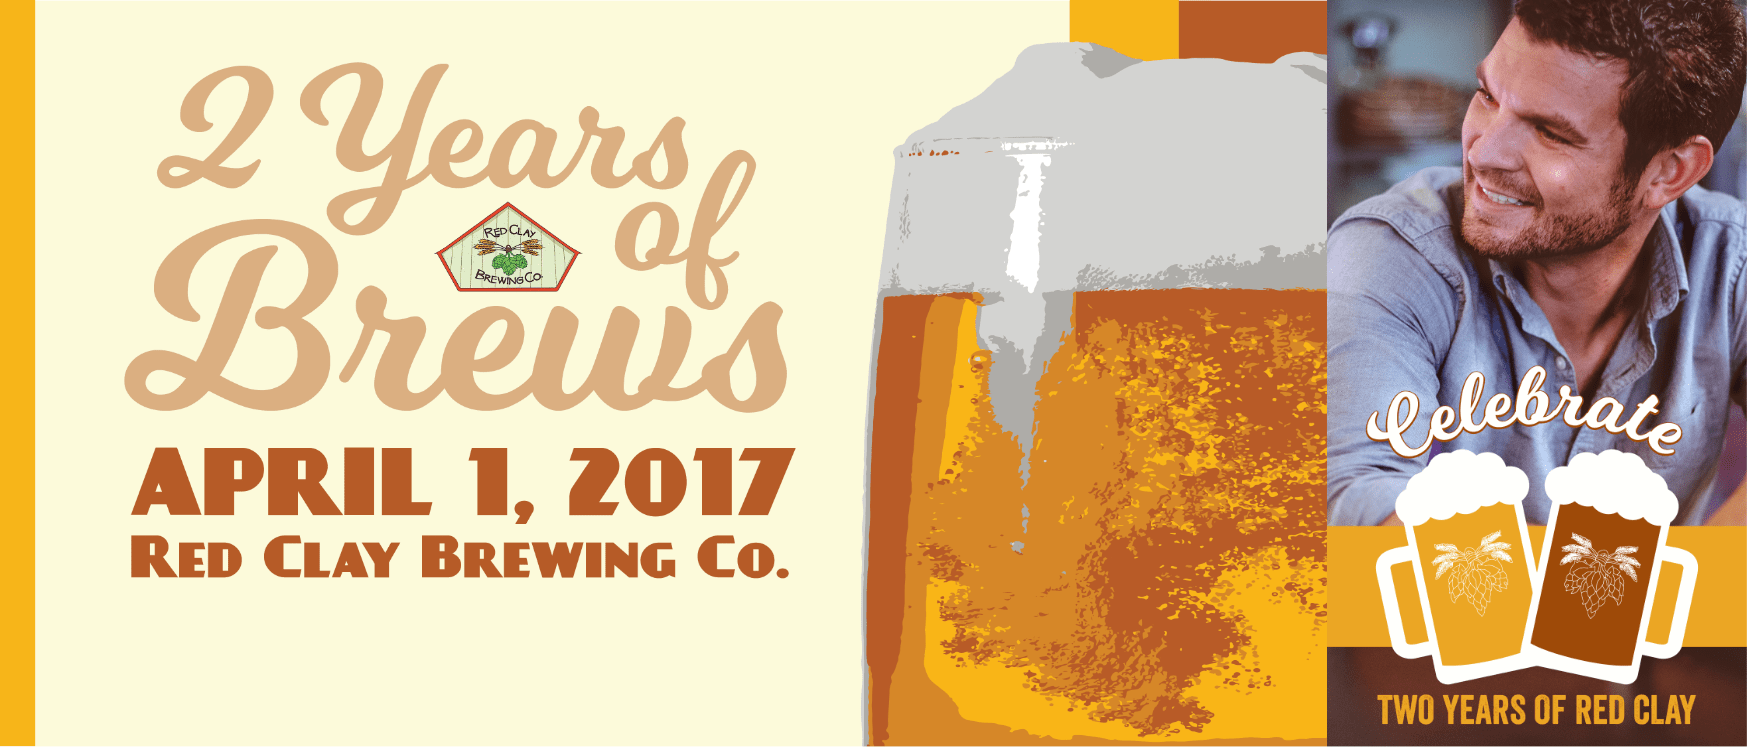 Red Clay Brewing Company anniversary header and filter